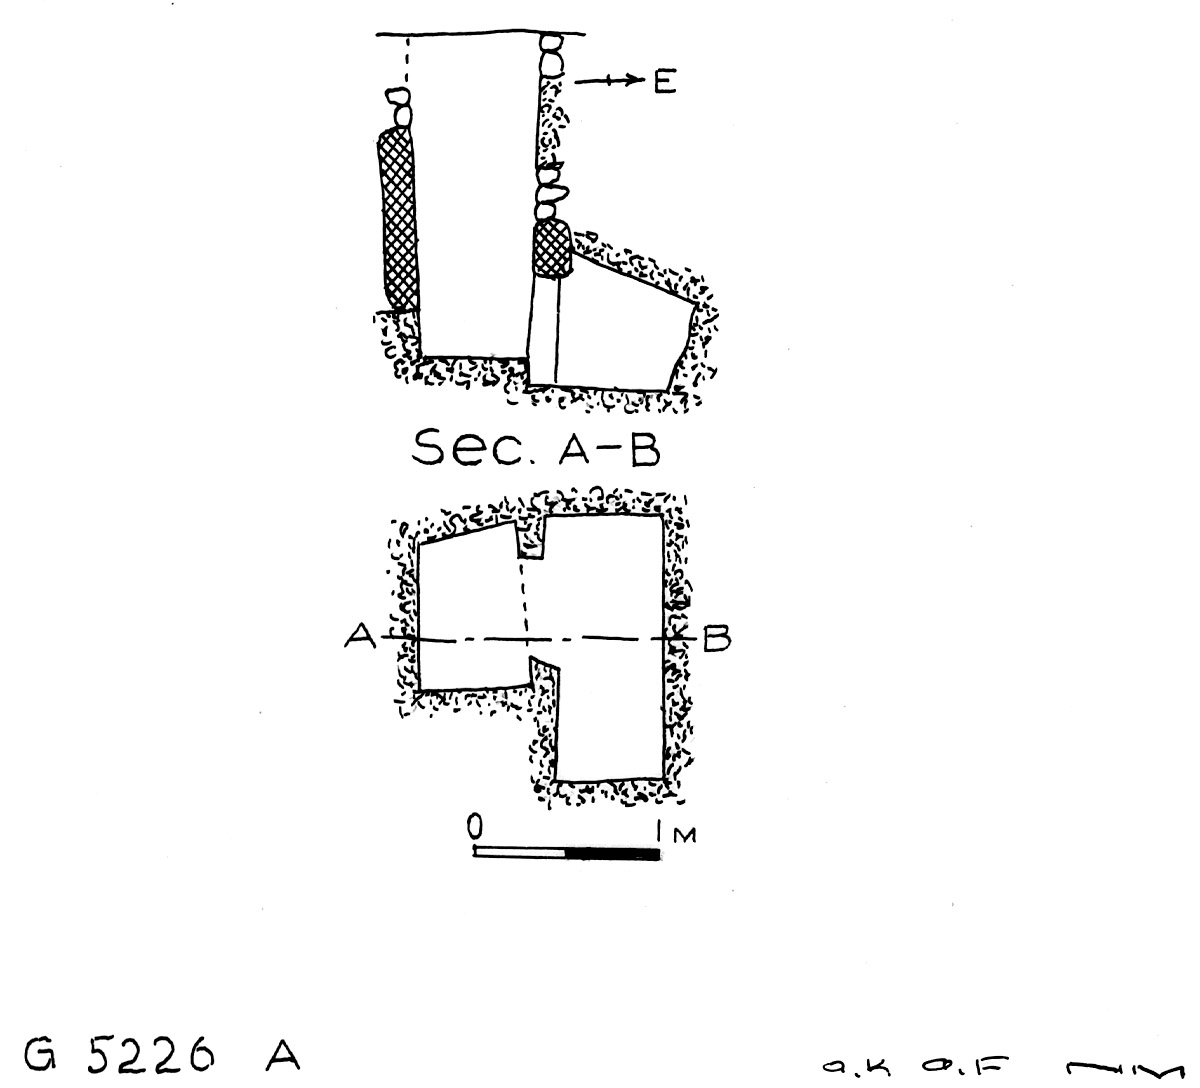 Maps and plans: G 5226, Shaft A